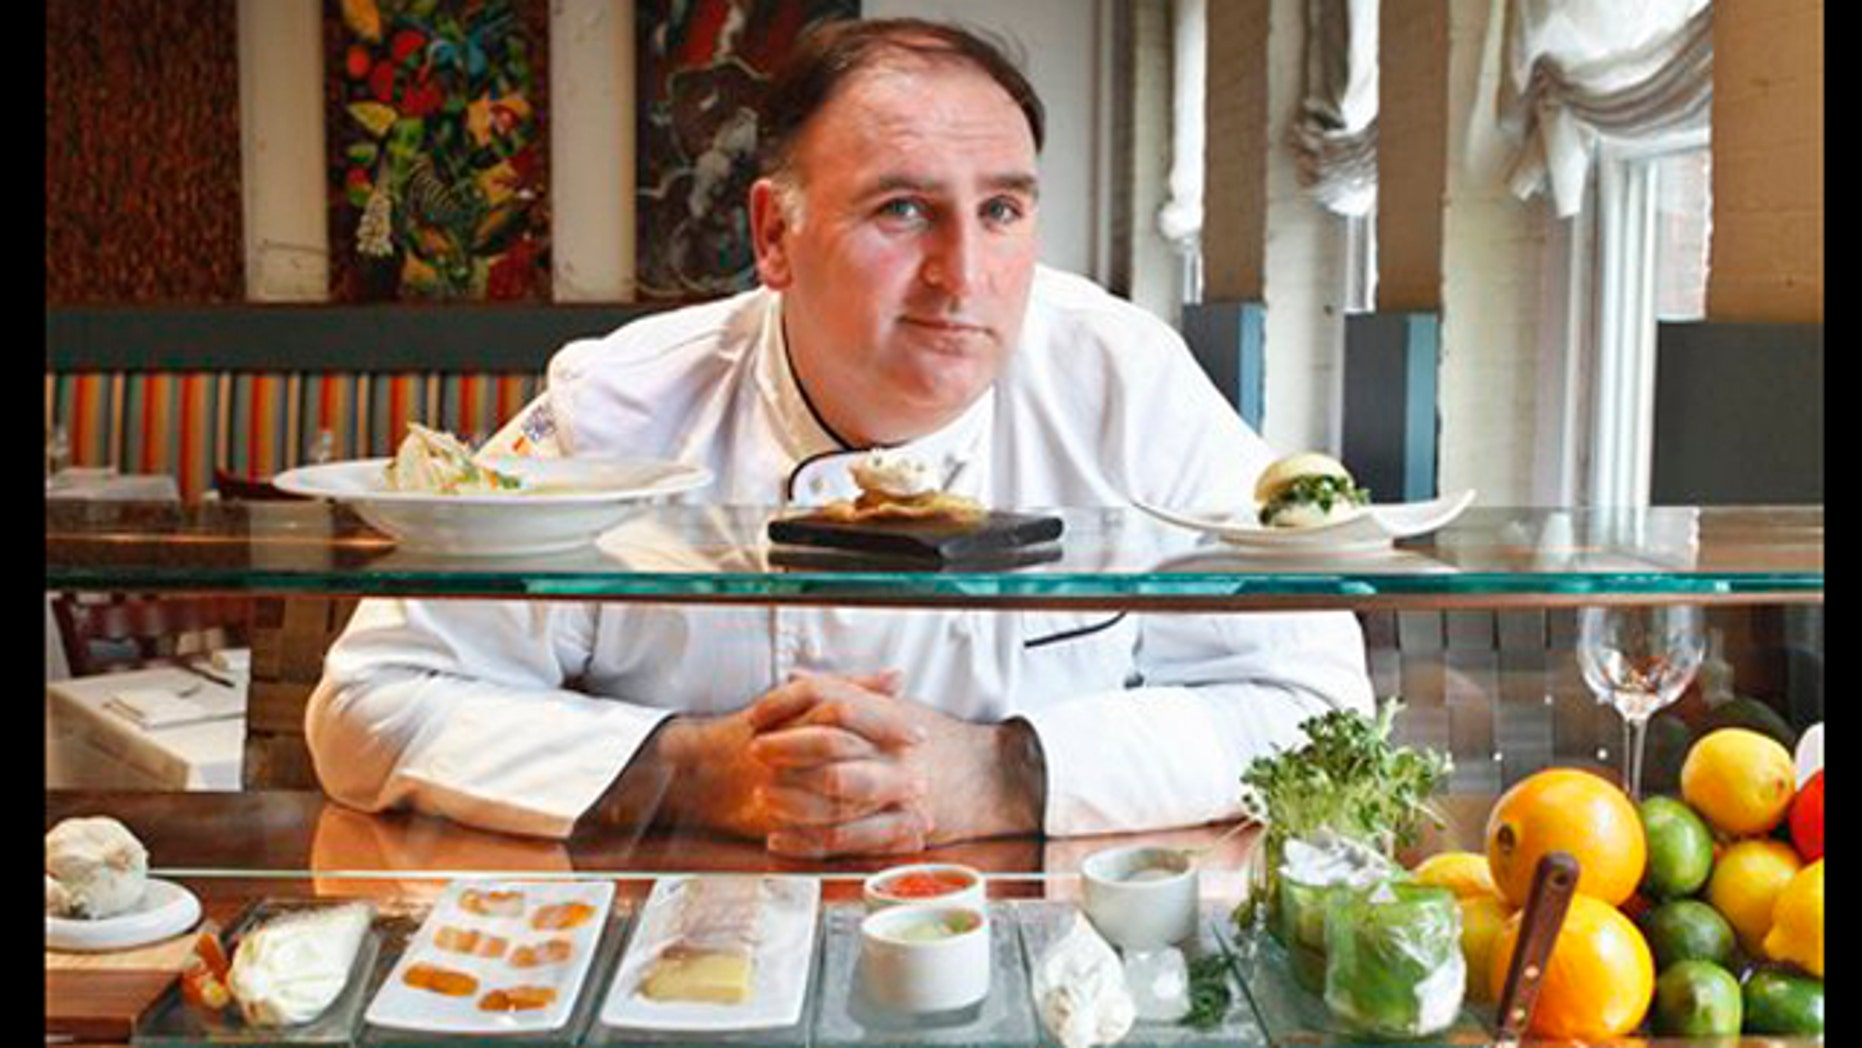 FILE-   This Tuesday, March 15, 2011 file photo shows chef Jose Andres at his Minibar restaurant in Washington. Small plates have earned Jose Andres one of the food world's biggest honors. The man credited with popularizing tapas _ the Spanish custom of dining on small, shared plates _ was named the nation's most outstanding chef Monday during the James Beard Foundation's annual awards ceremony, the so-called Oscars of the culinary crowd.  (AP Photo/Jacquelyn Martin, FILE)